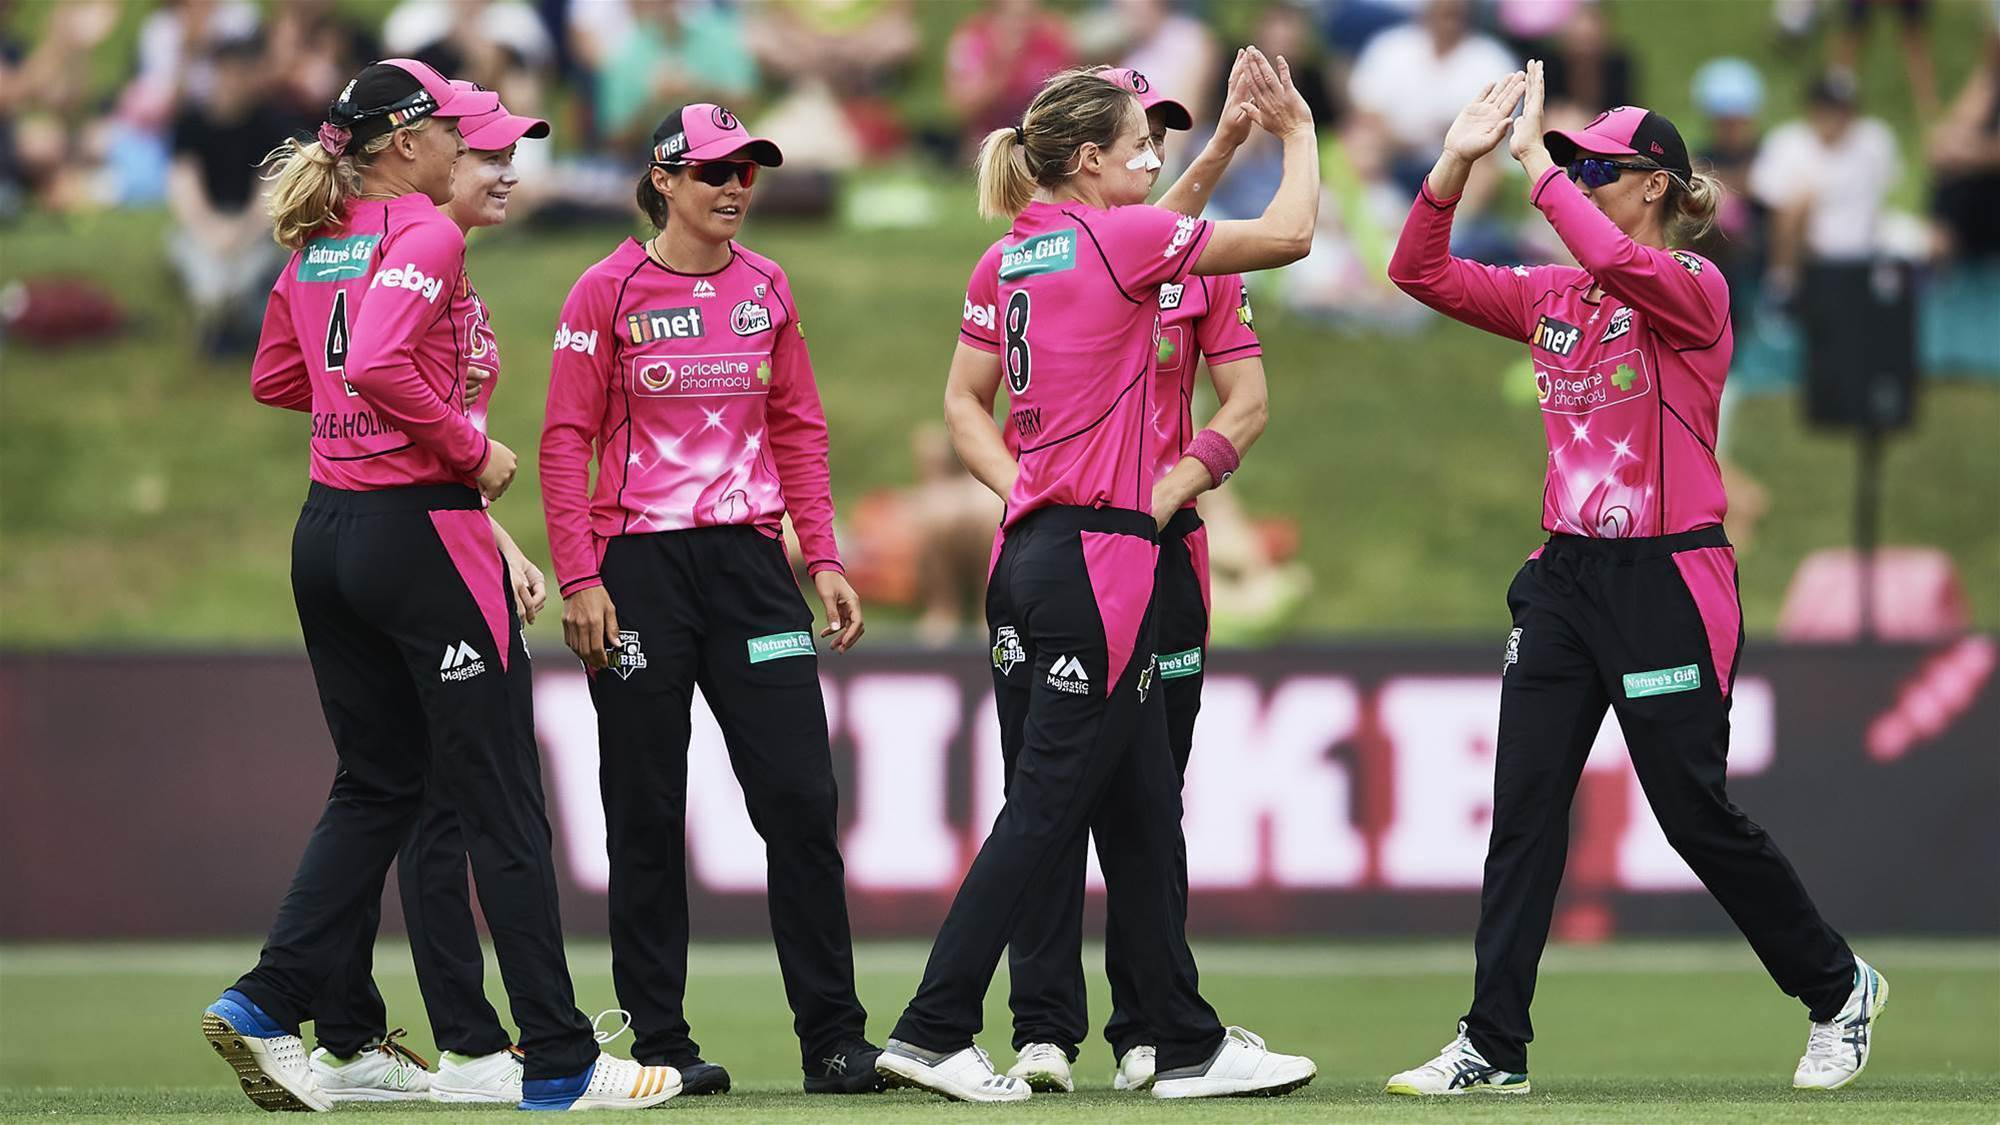 Women's sport on the rise new research reveals